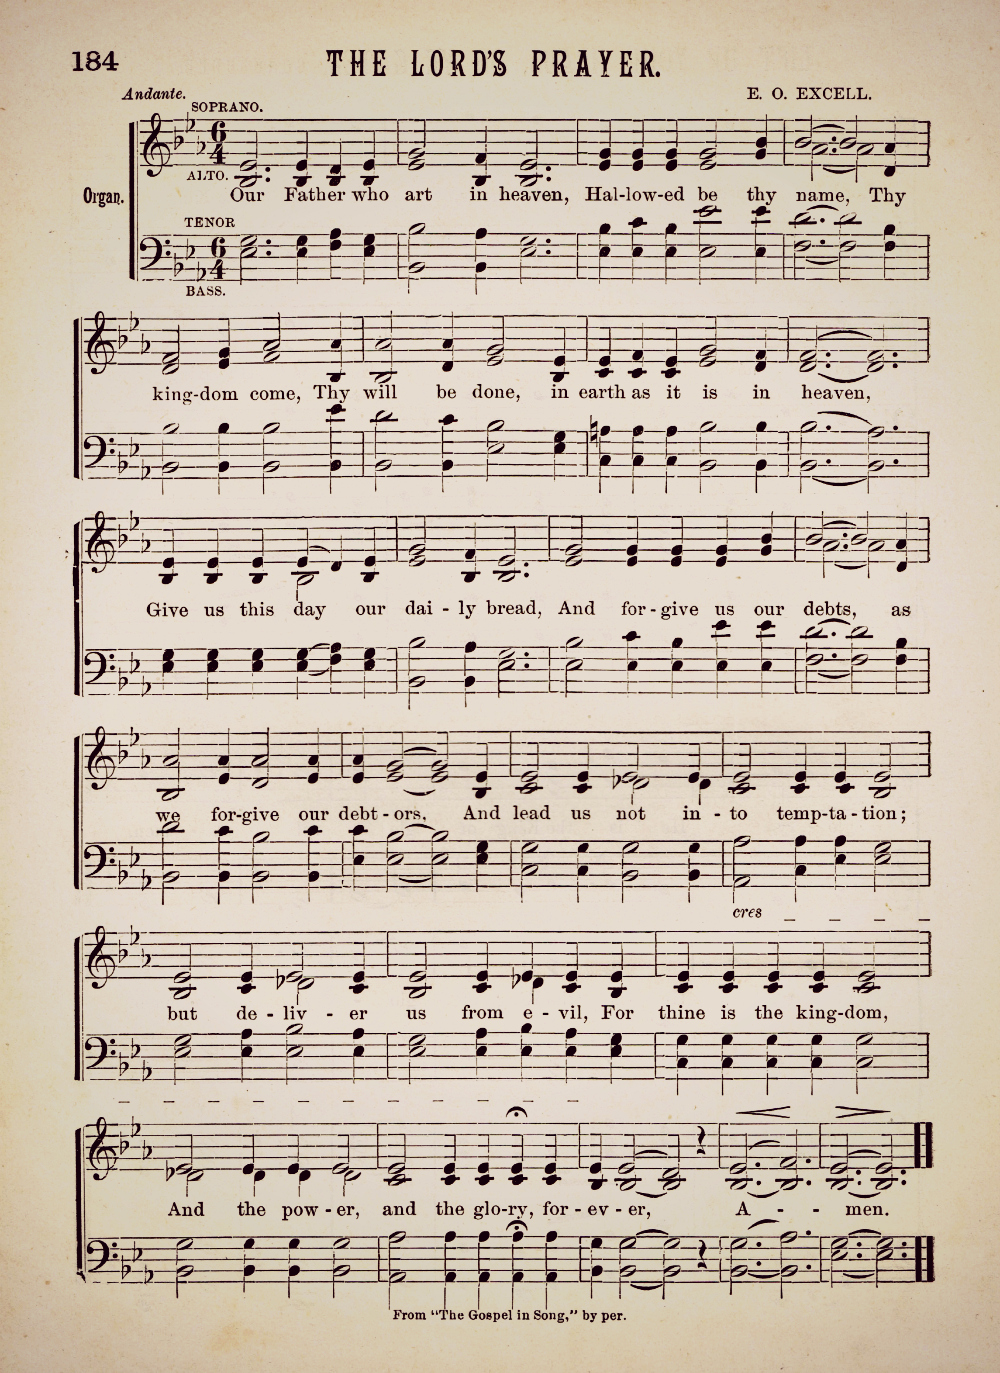 The Lord's Prayer Antique Hymn Page